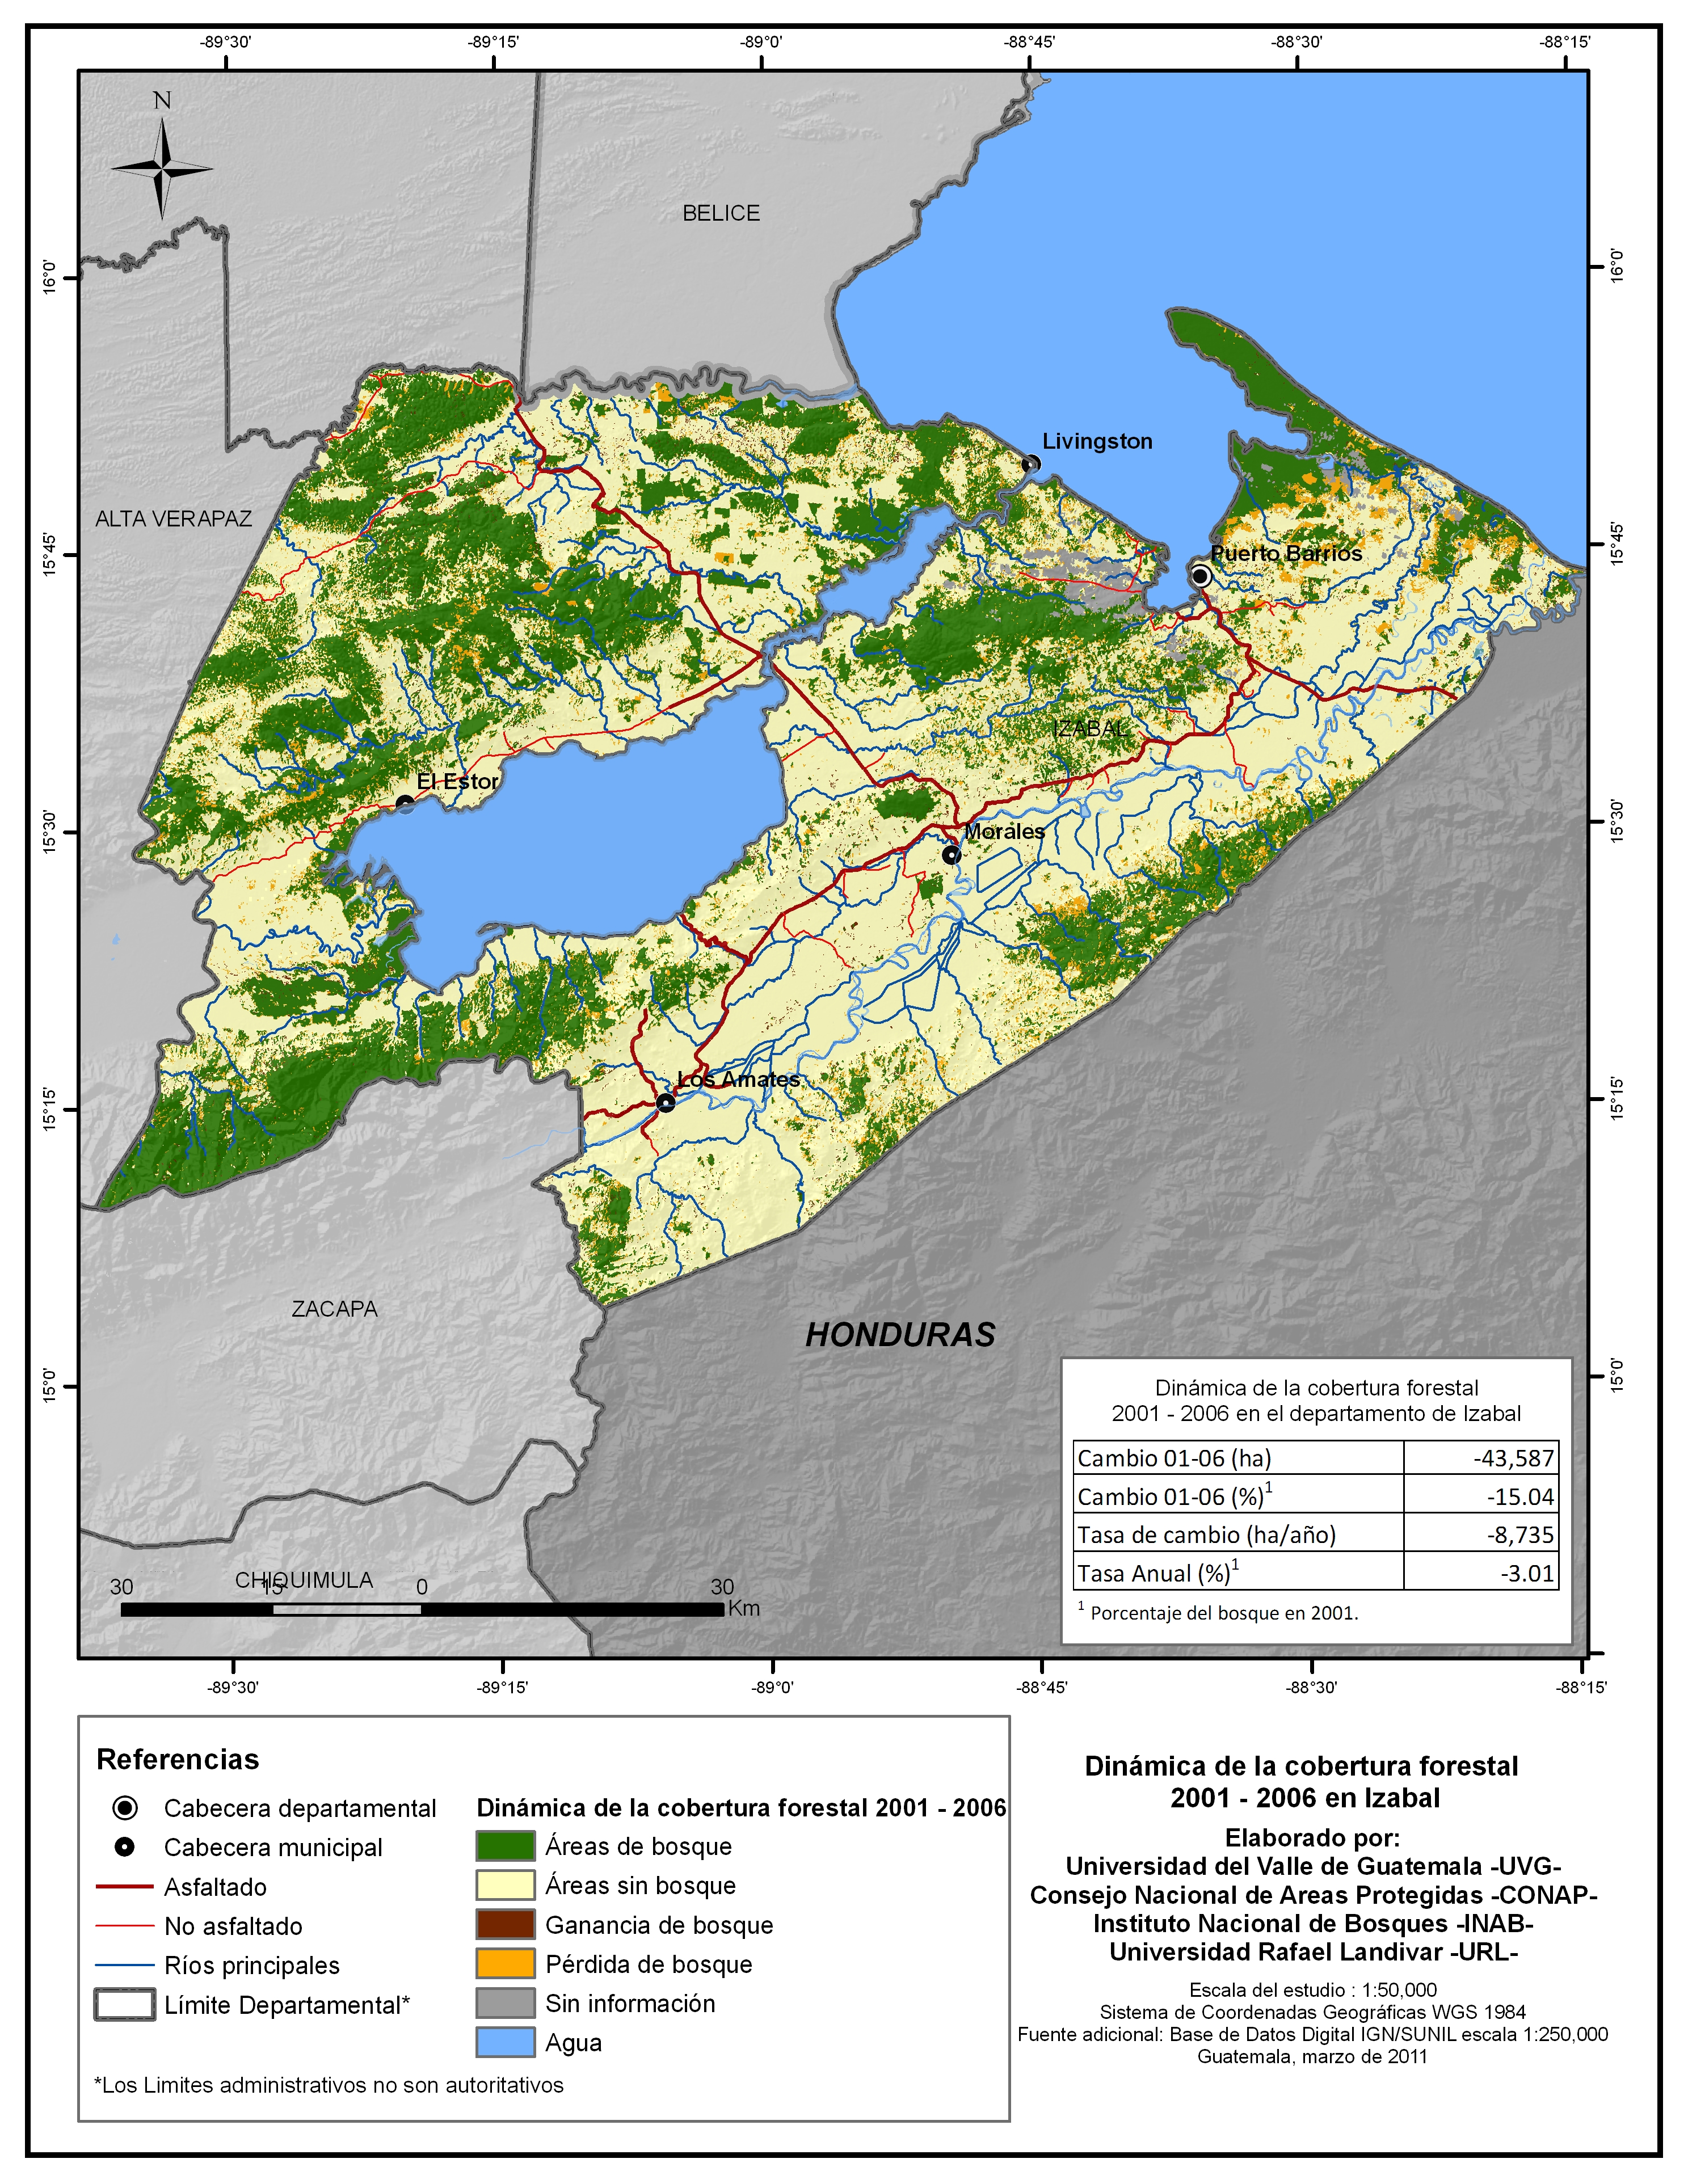 Forest cover in the Department of Izabal 2001-2006